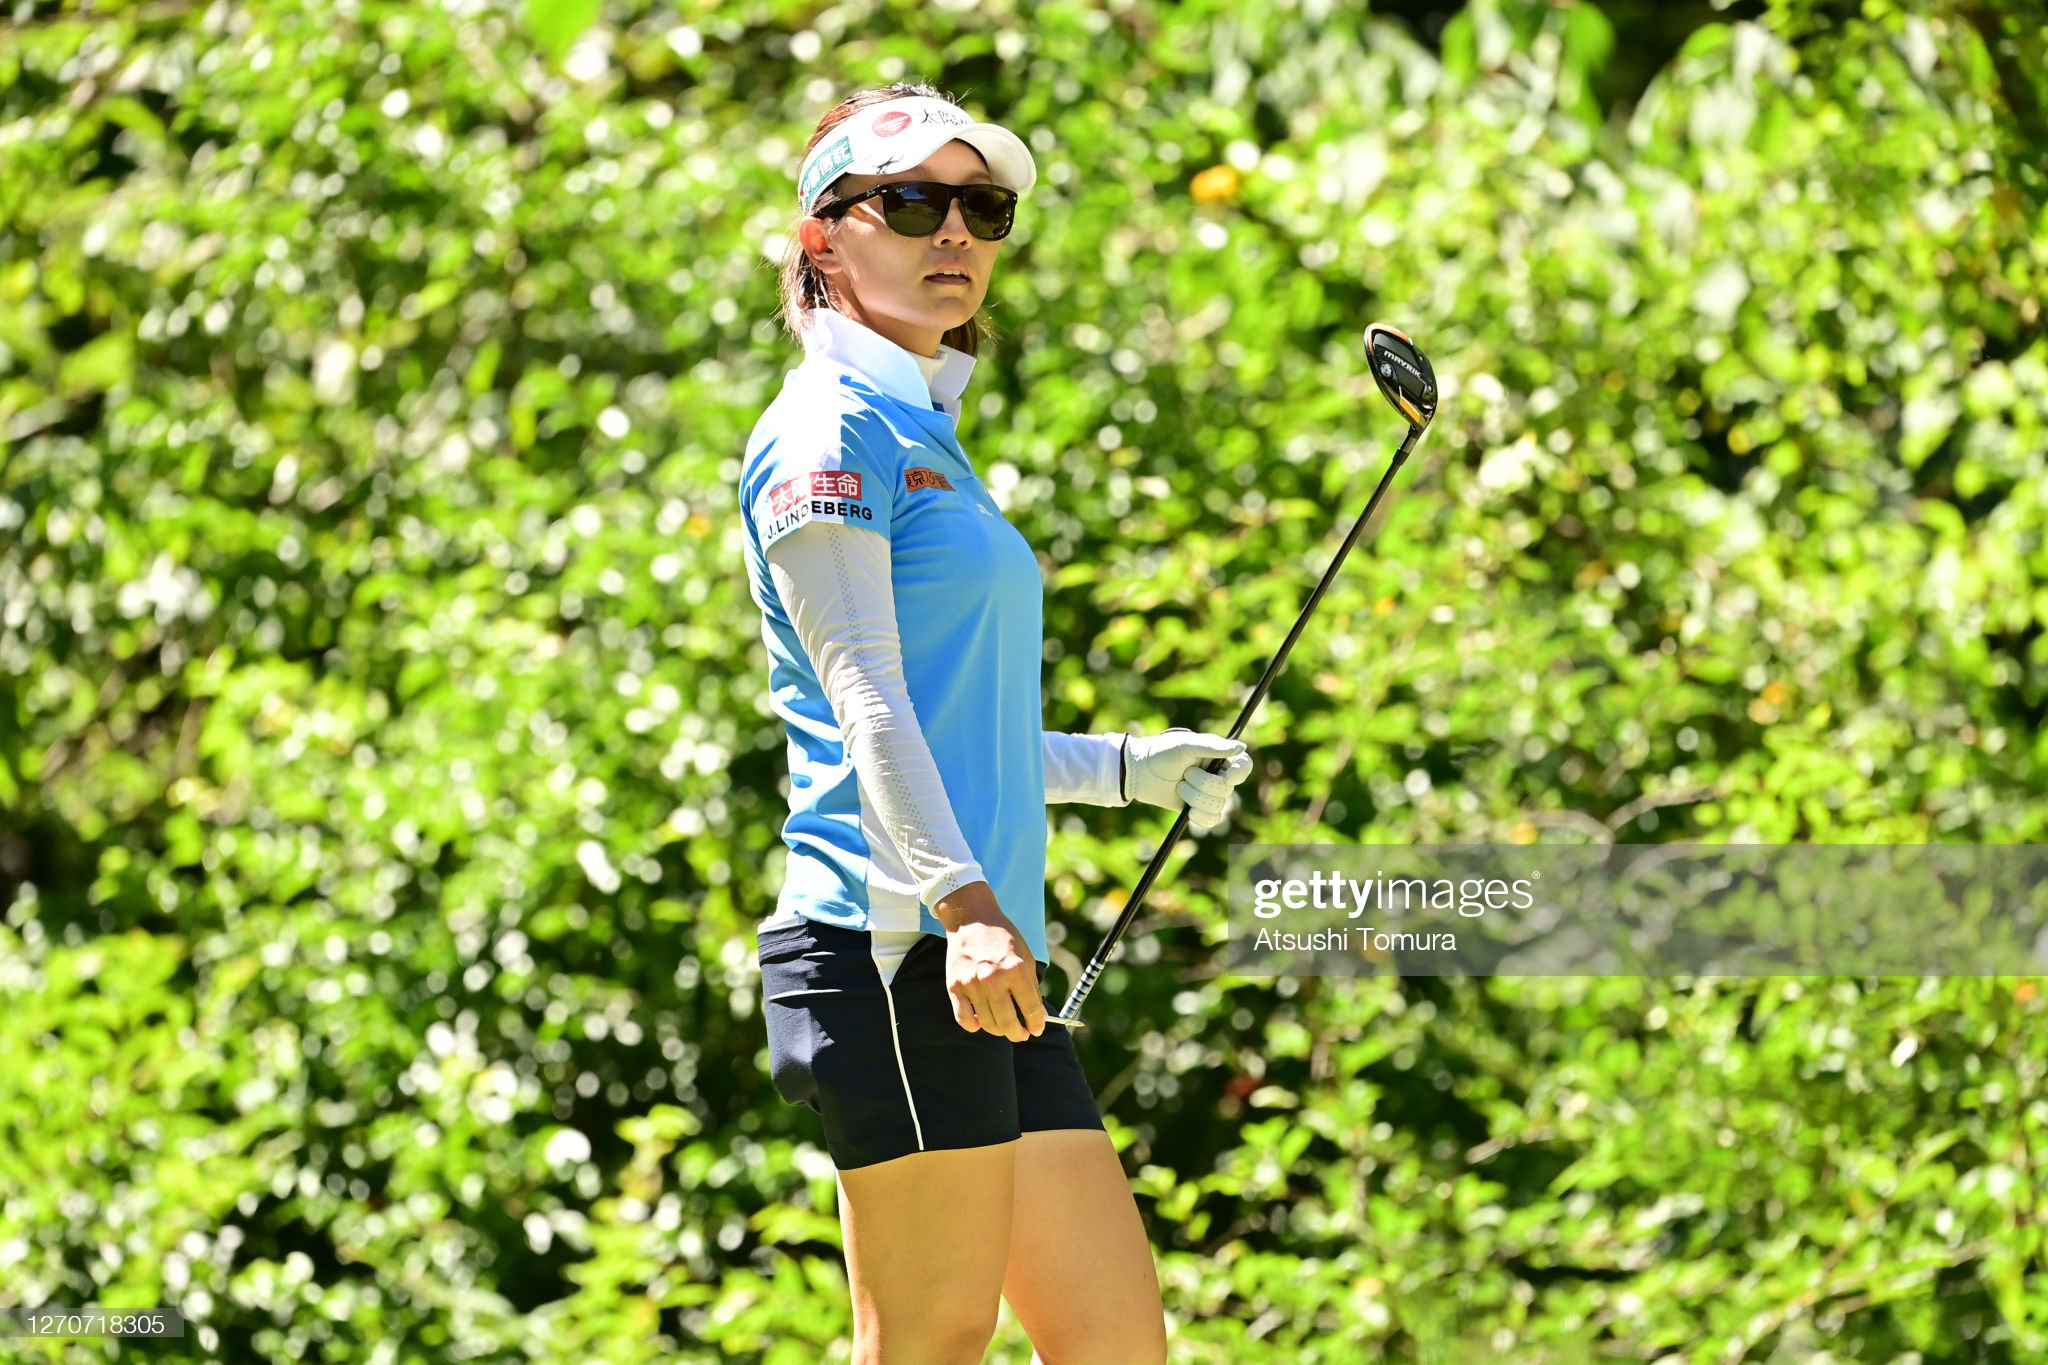 https://media.gettyimages.com/photos/teresa-lu-of-chinese-taipei-reacts-after-her-tee-shot-on-the-7th-hole-picture-id1270718305?s=2048x2048